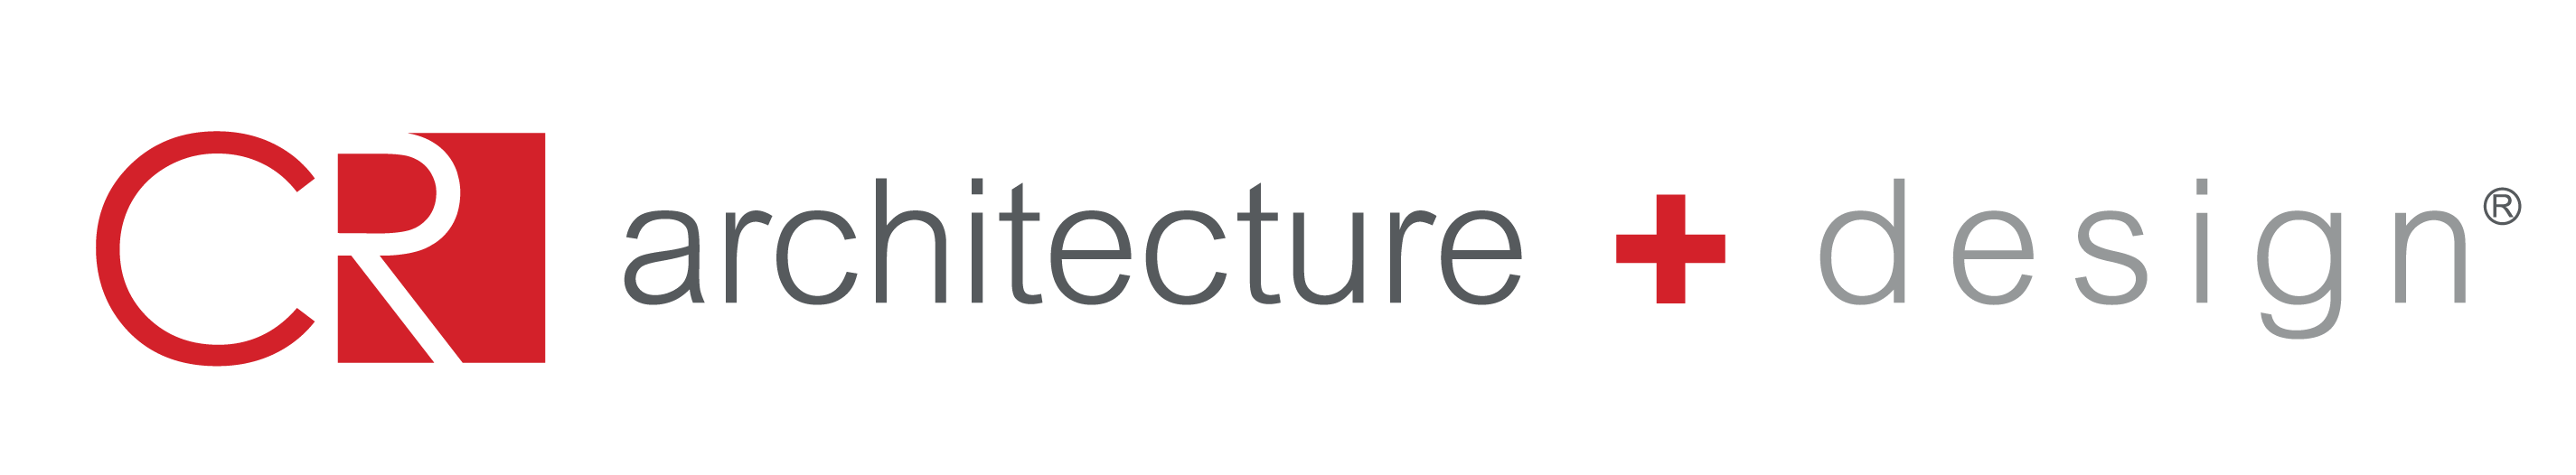 CR architecture + design logo